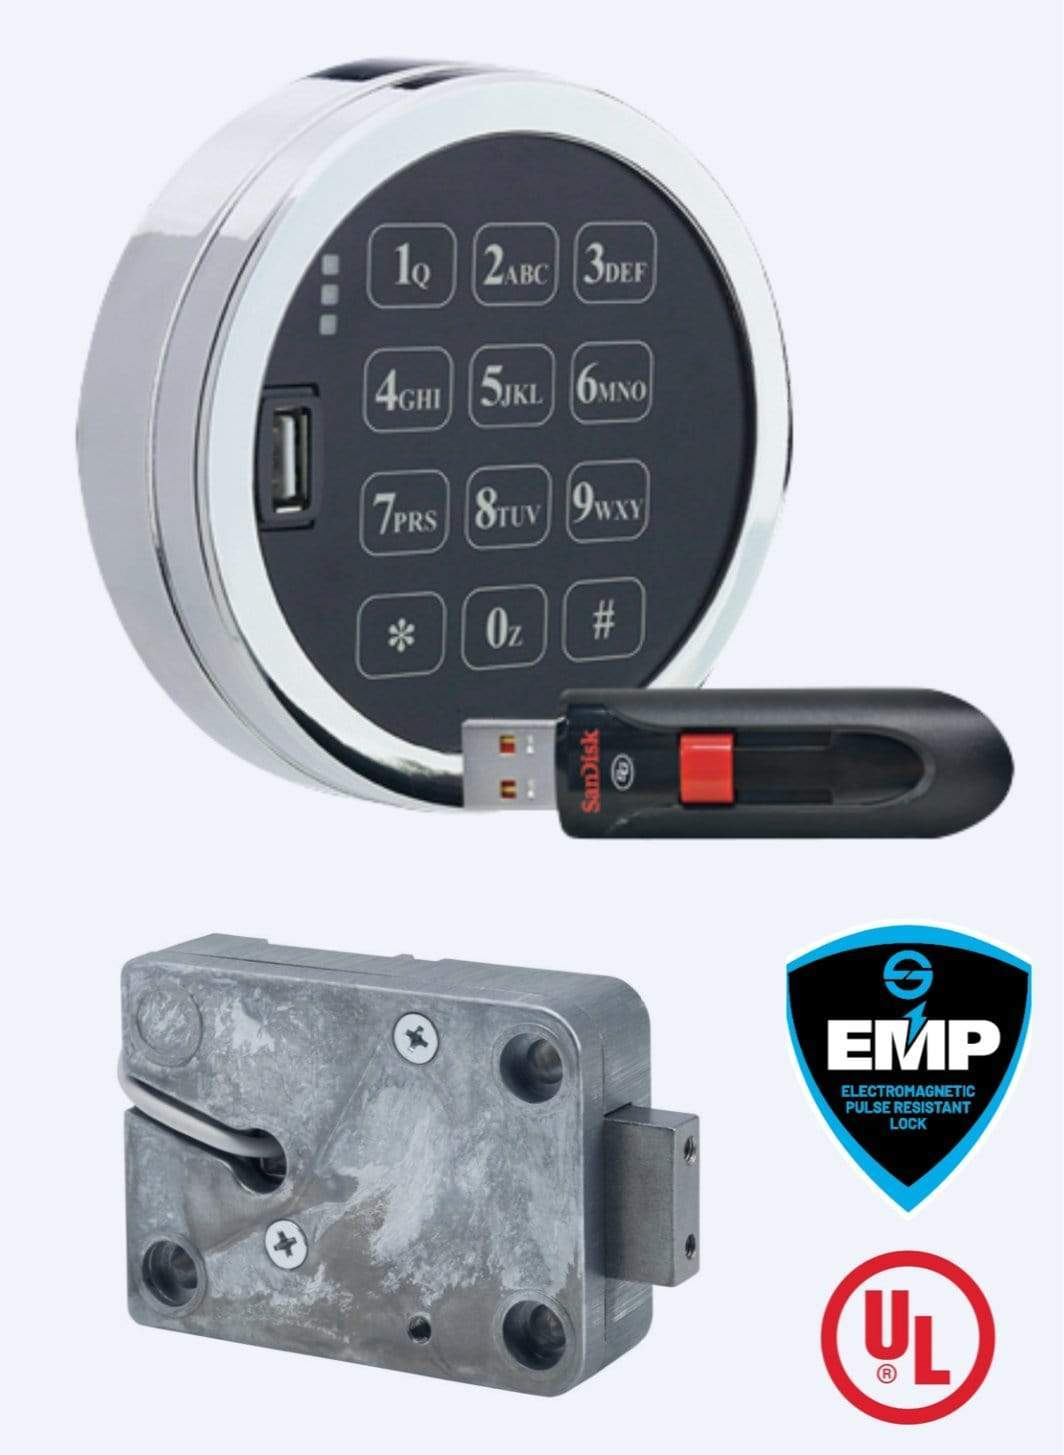 SG3007-102, Digital Platform Audit 2.0, with D-Drive, with Satin Chrome Keypad, Complete Lock Package